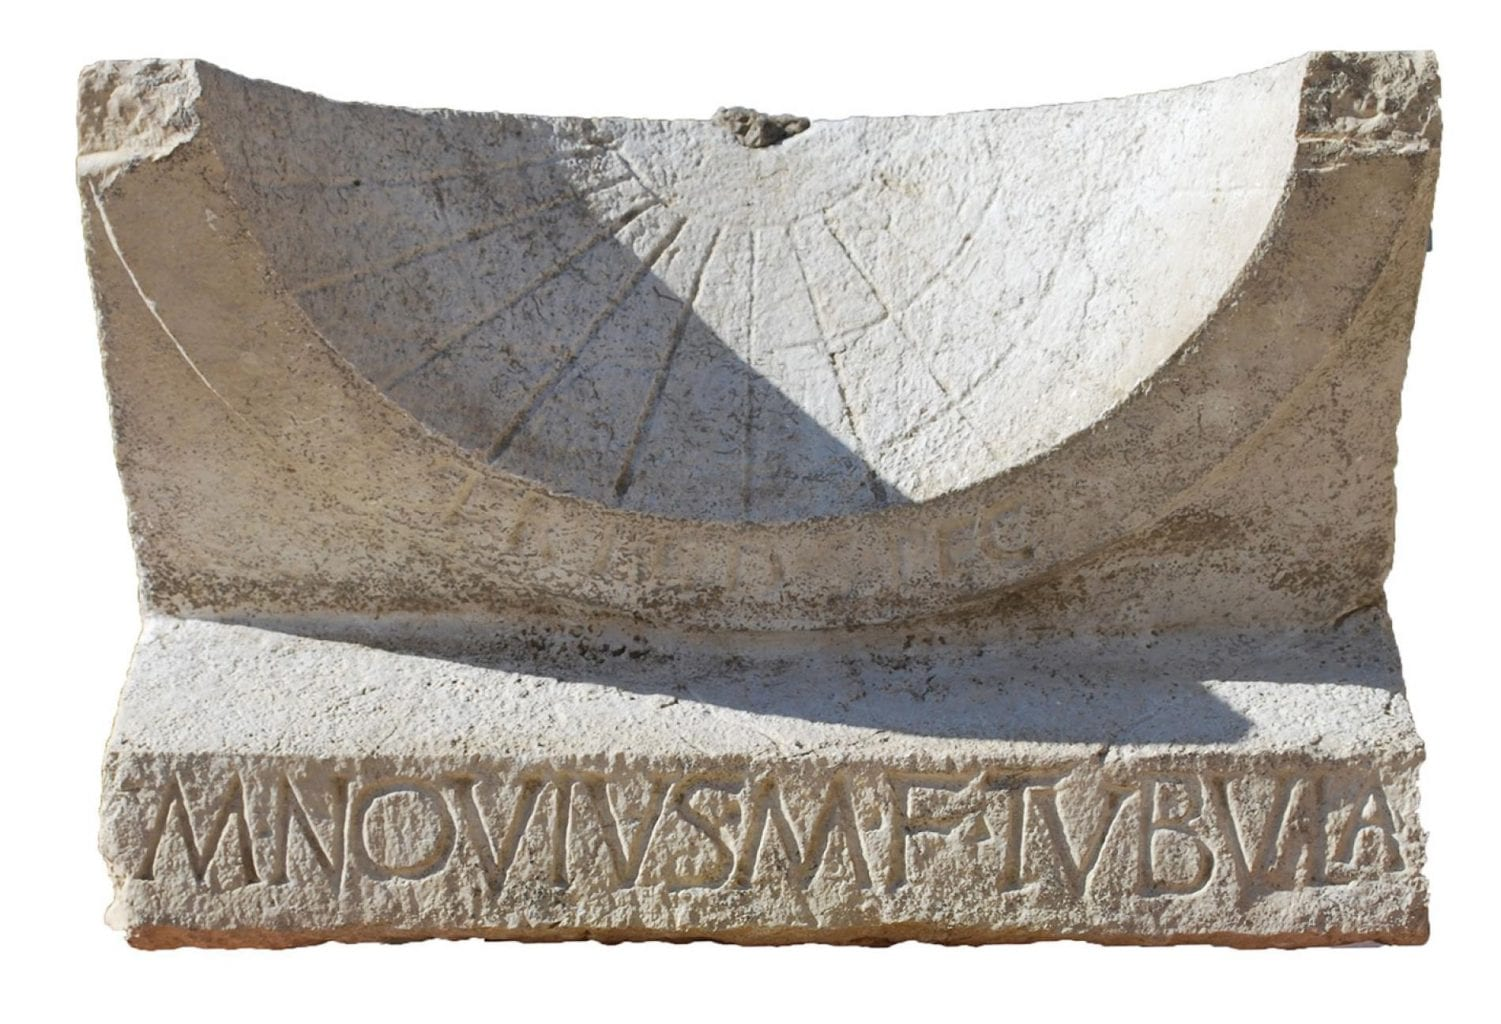 A 2000-year old sundial, once donated by  Marcus Novius Tubula after his election victory. Credit: National Geographic